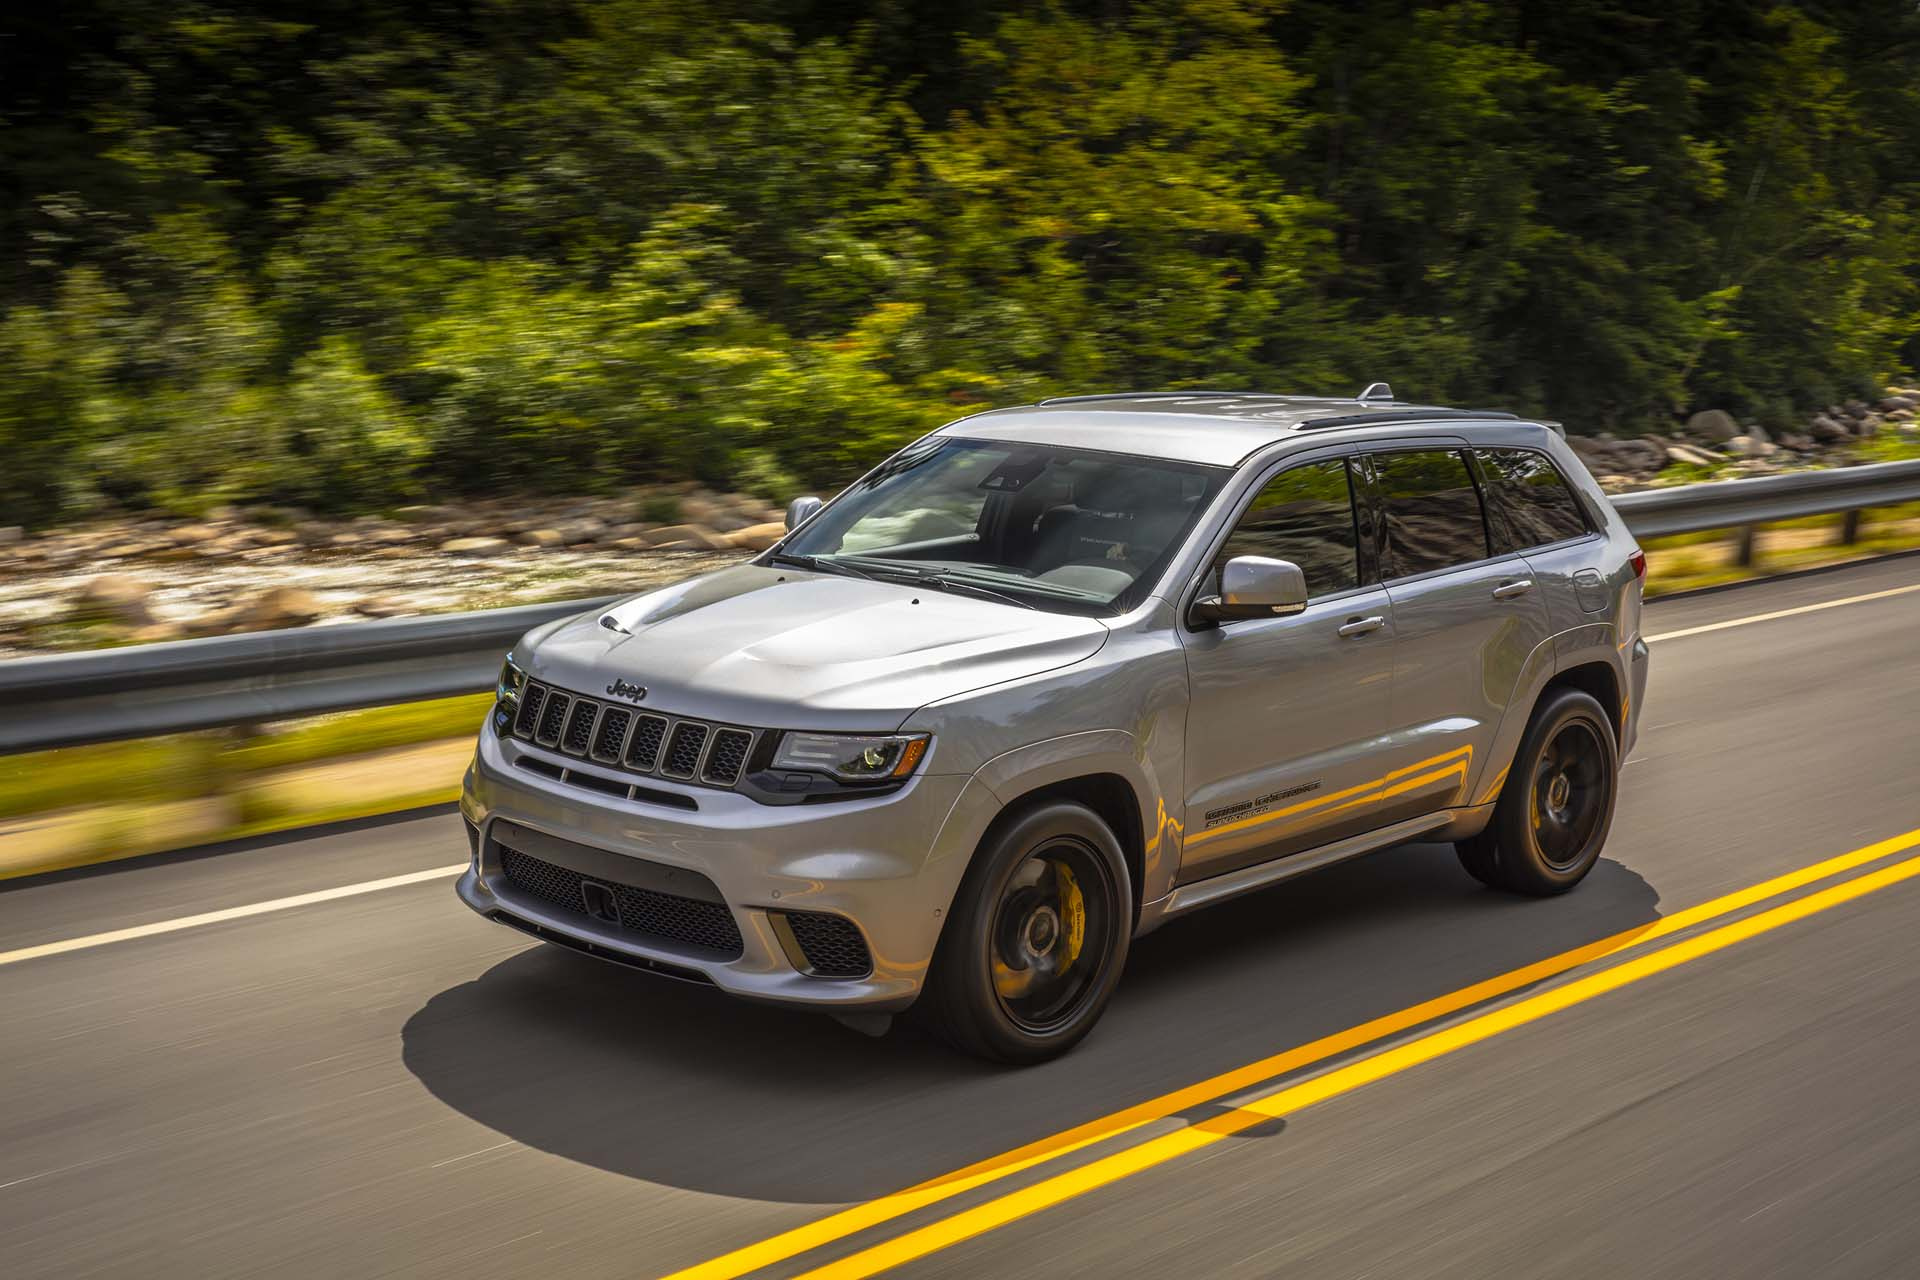 2018 jeep grand cherokee gas mileage the car connection. Black Bedroom Furniture Sets. Home Design Ideas